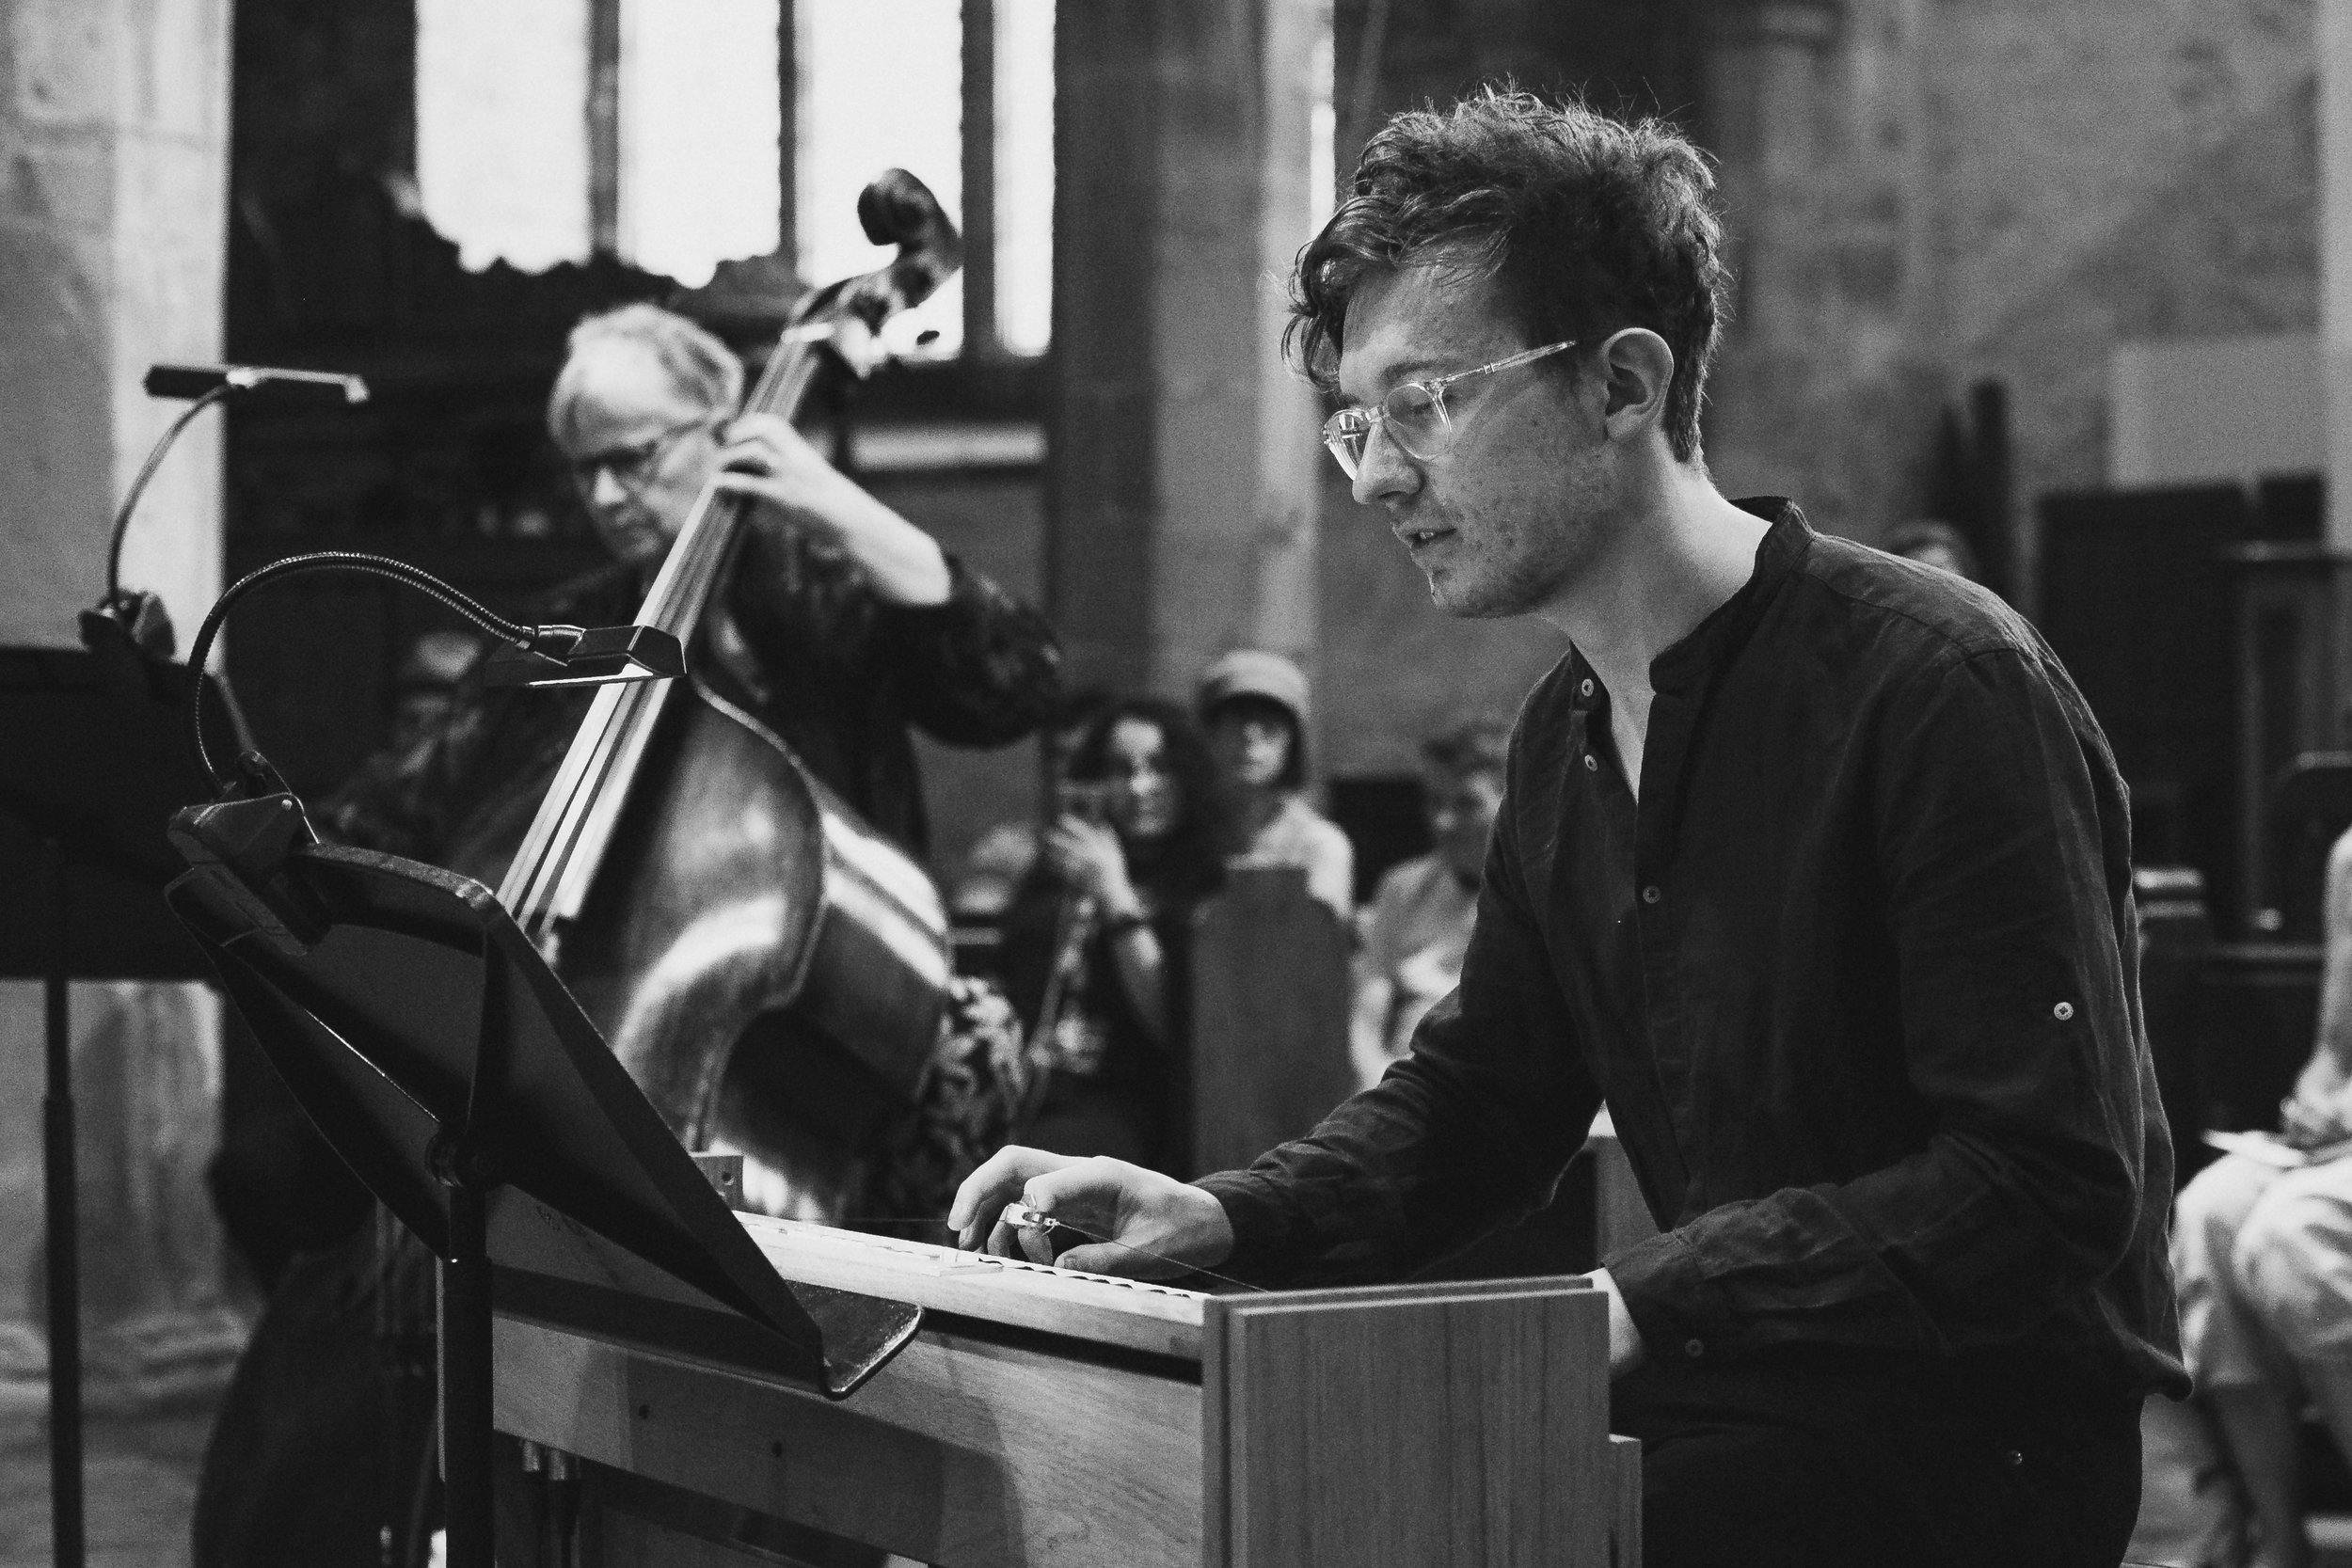 Josh Semans playing the ondes Martenot for Enharmonic Live, Alison Bean on Double Bass in the background (2019)